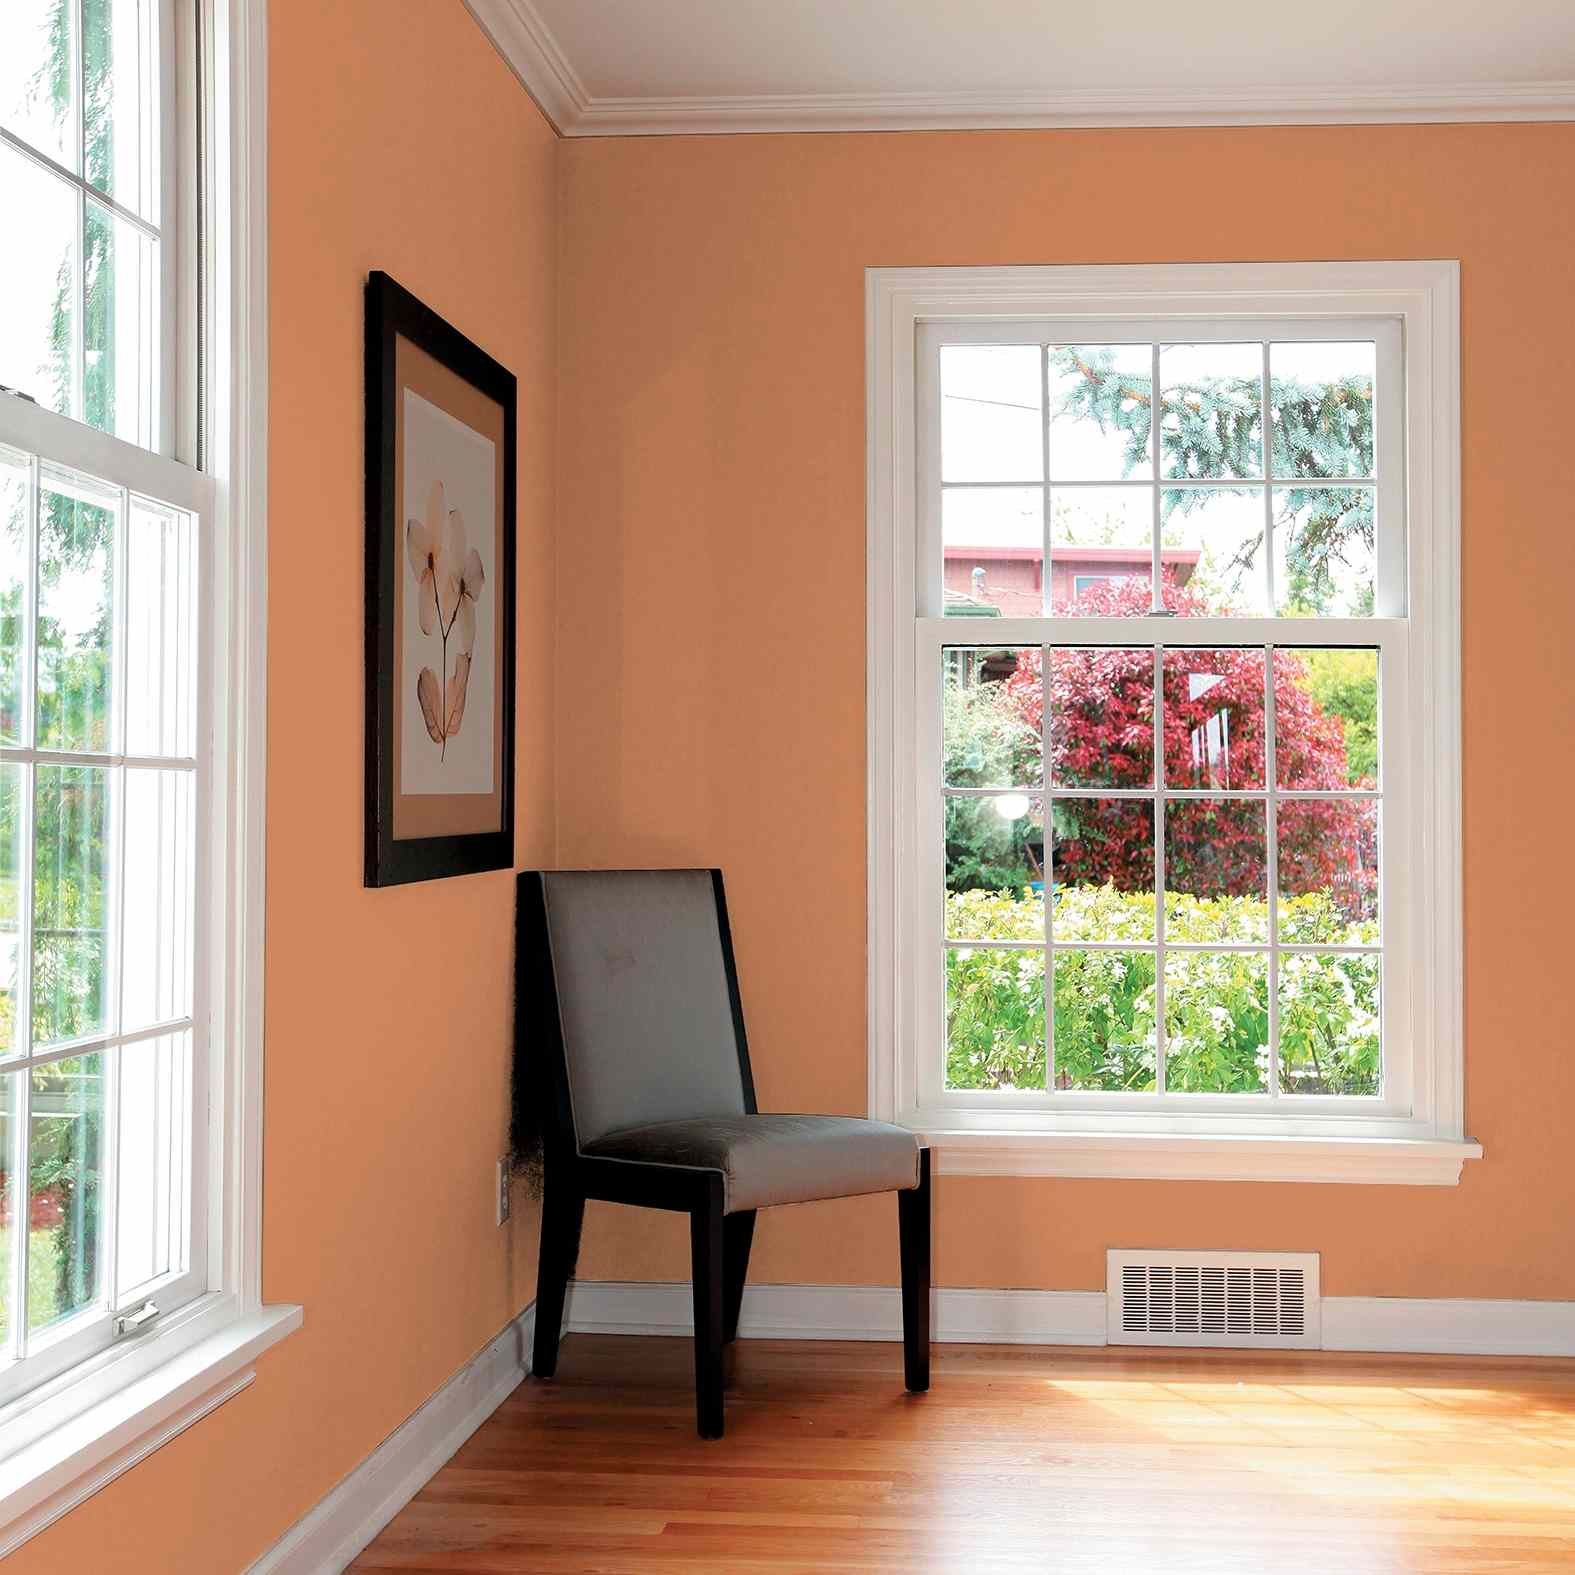 Room with Georgian Leather paint by PPG/Glidden